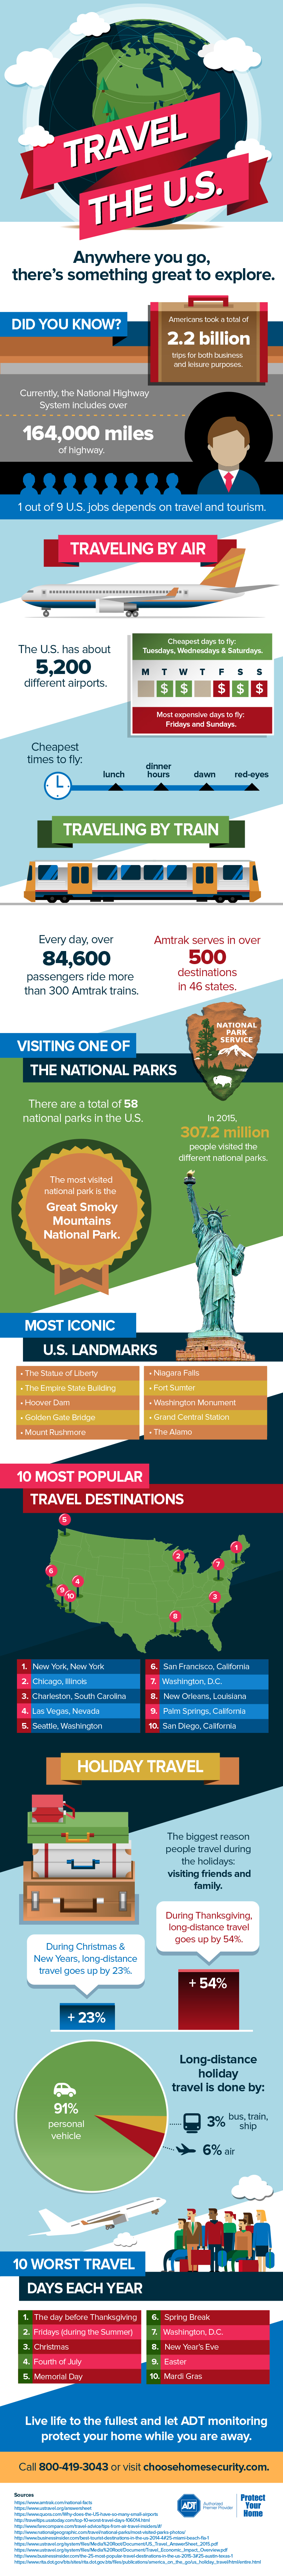 Everything You Need To Know About Traveling The U.S - Infographic